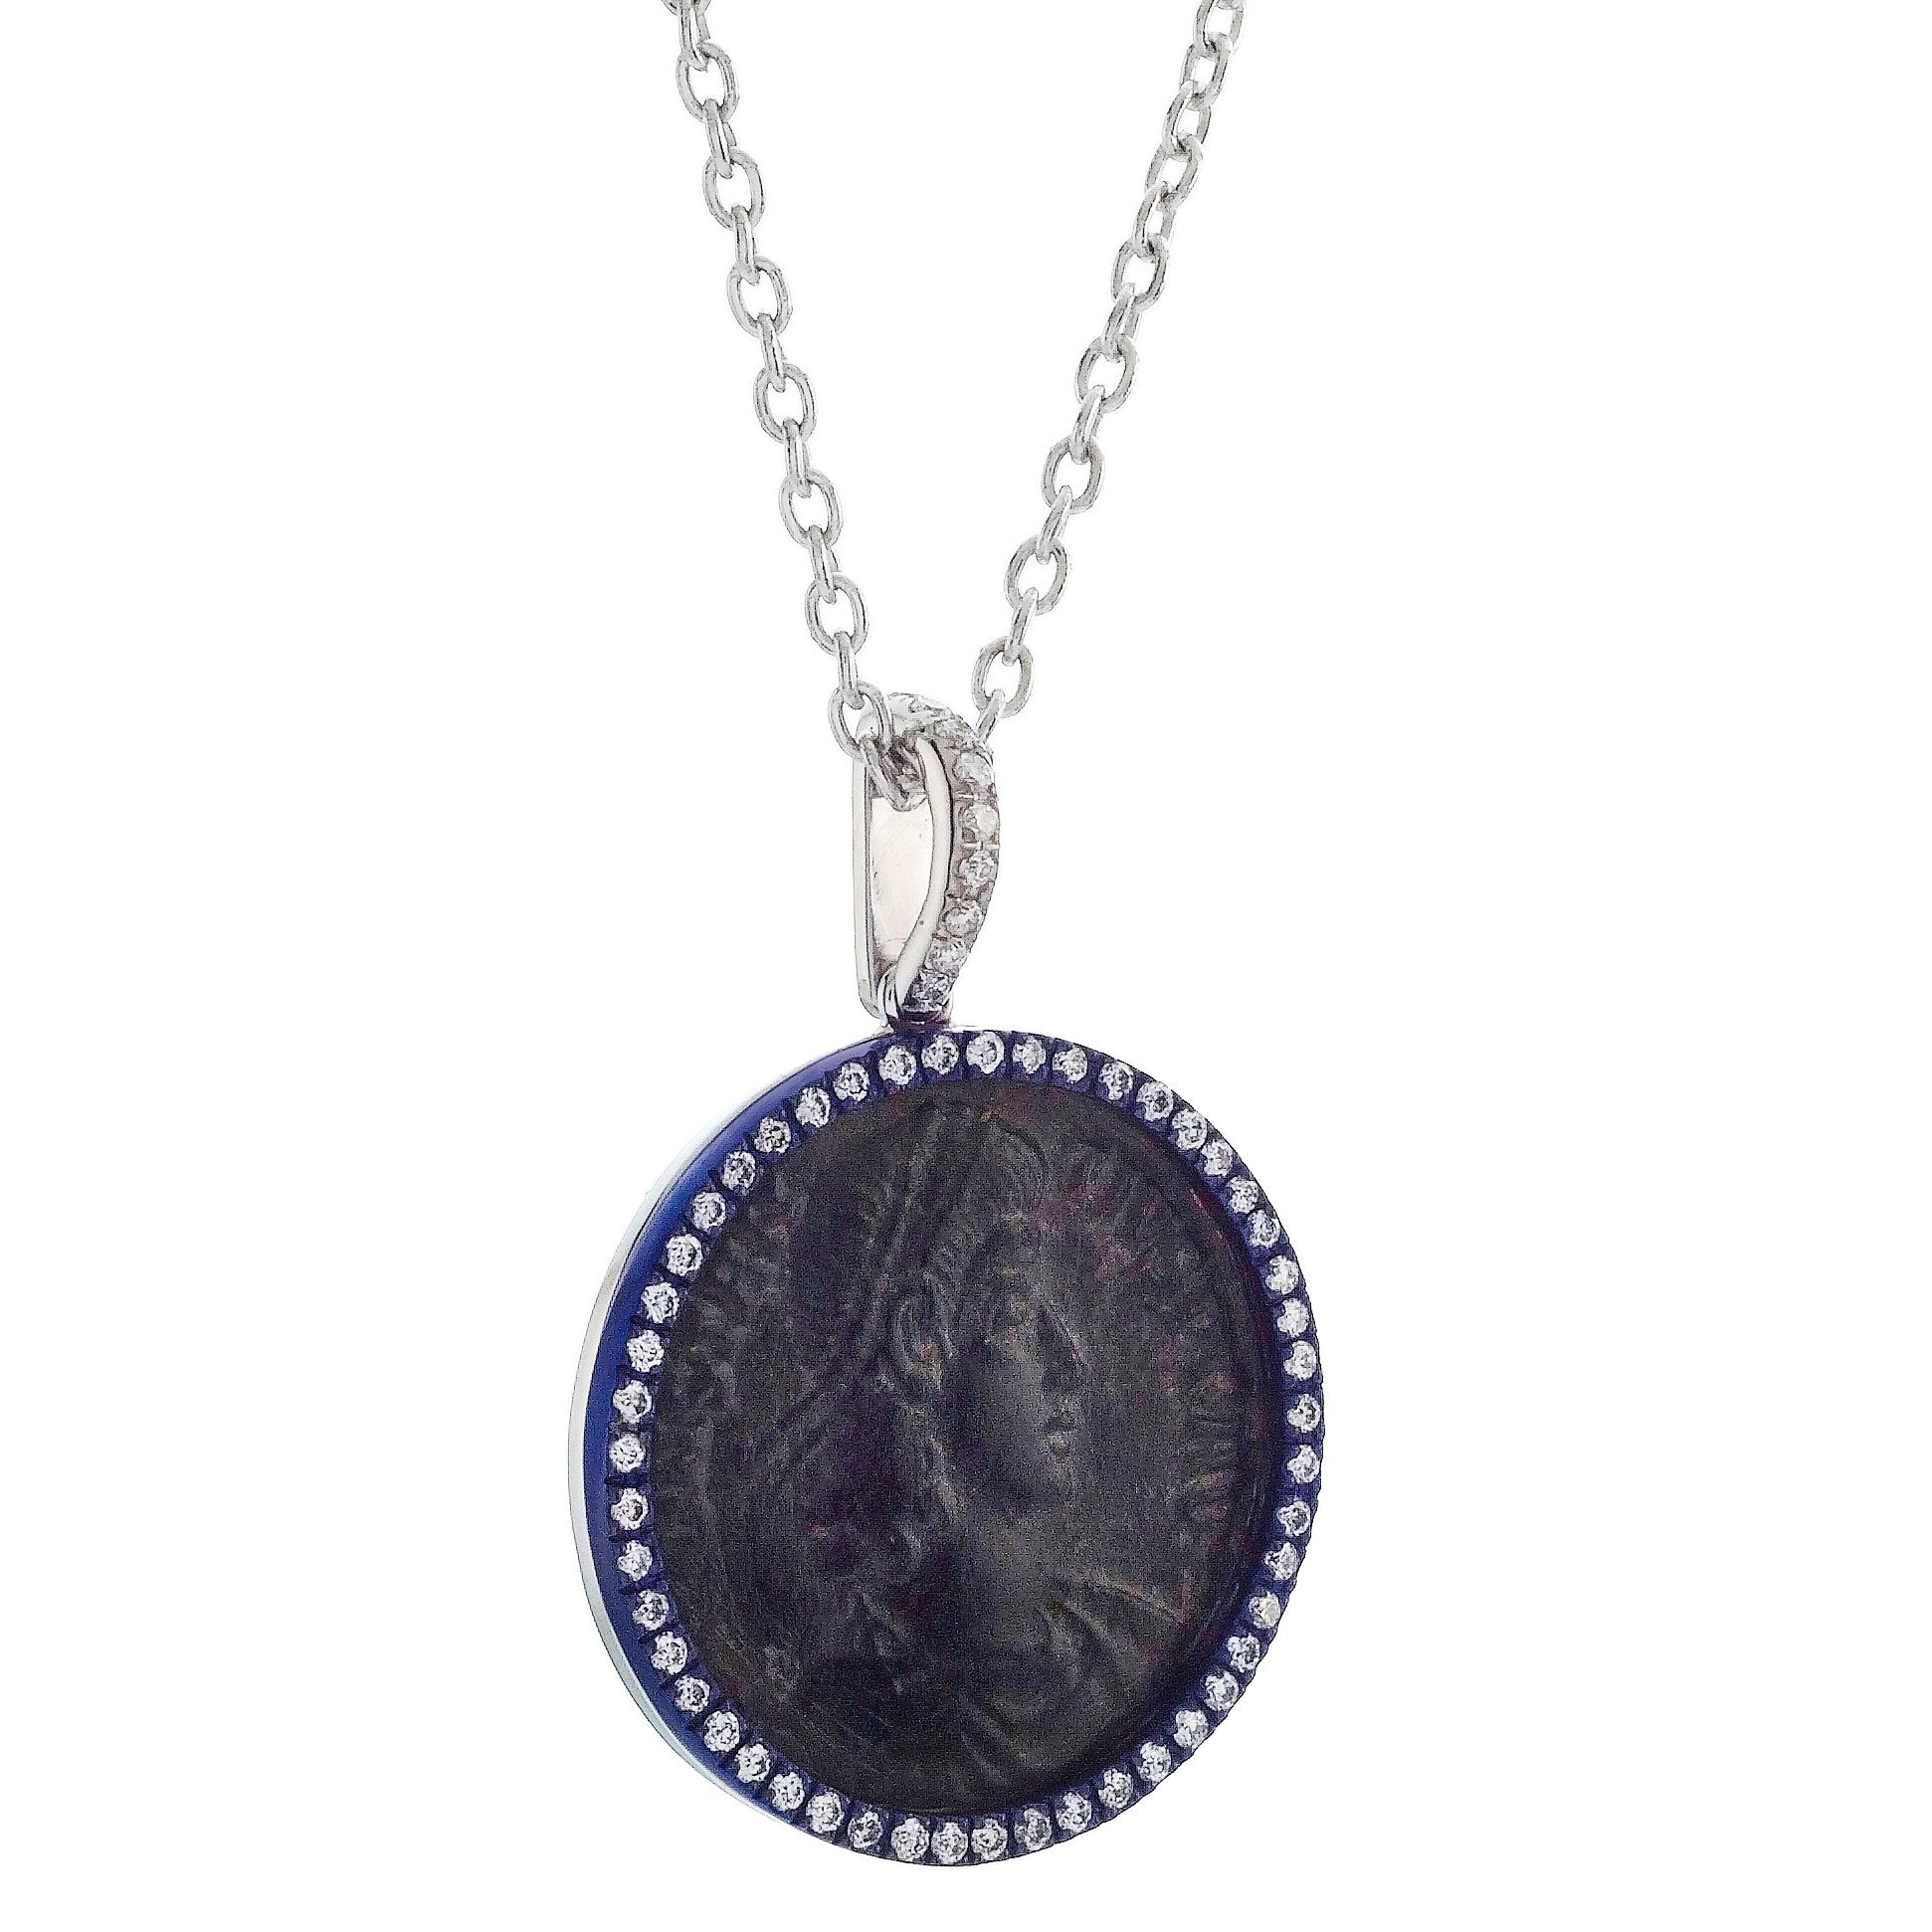 "1884 ""Maximiliano Erocole Period 286-305 A.D."" Original Bronze Coin Pendant 18K White Gold Blue Titanium with Diamonds"